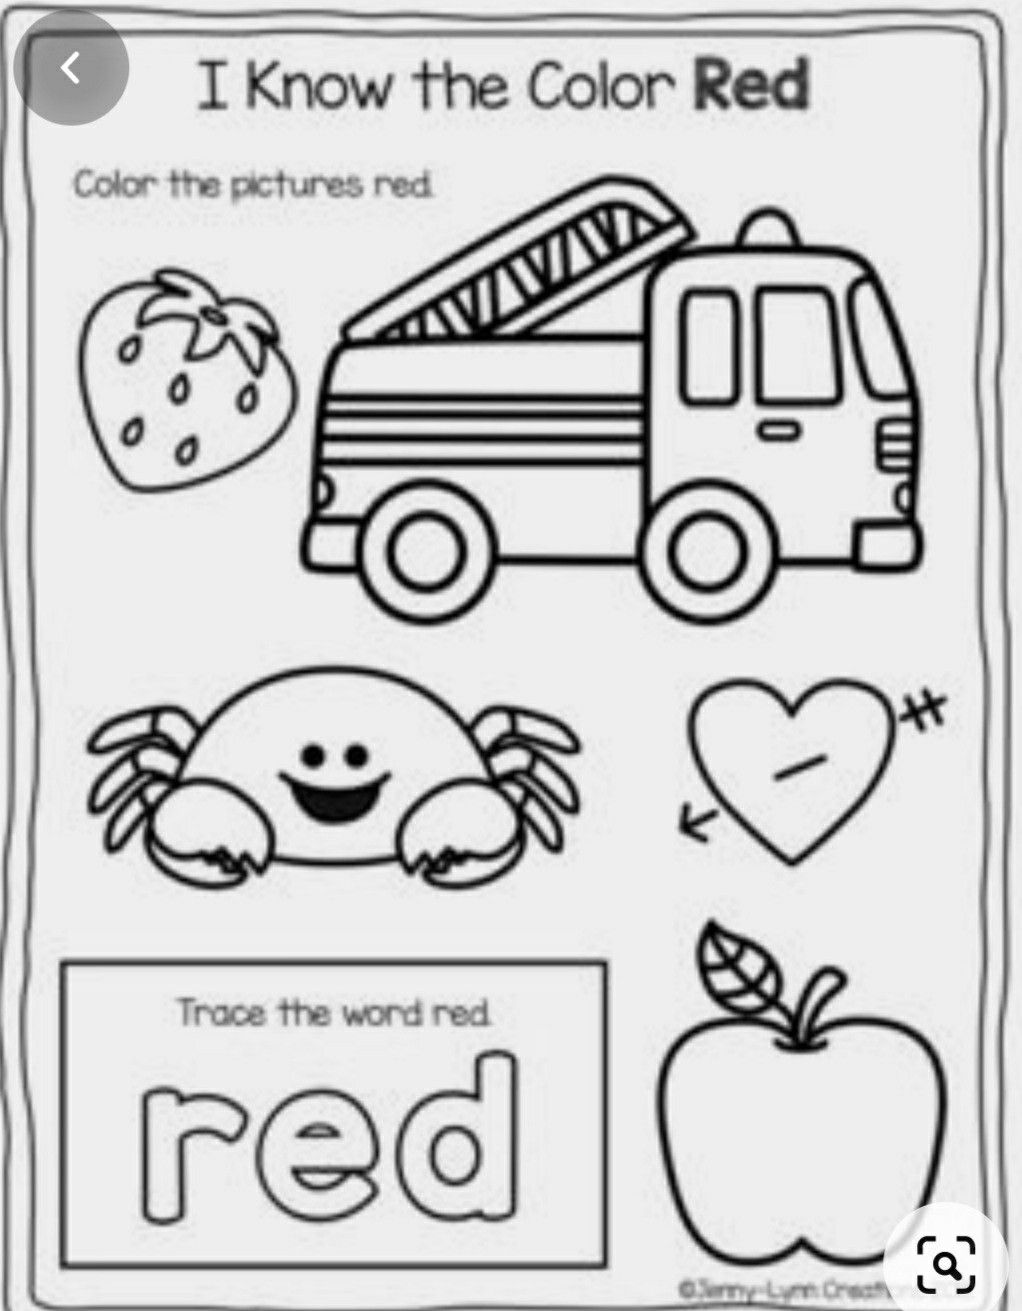 Pin By Holly Fitzgerald On Education Toddler Color Worksheets For Preschool Preschool Colors Teaching Colors [ 1311 x 1022 Pixel ]